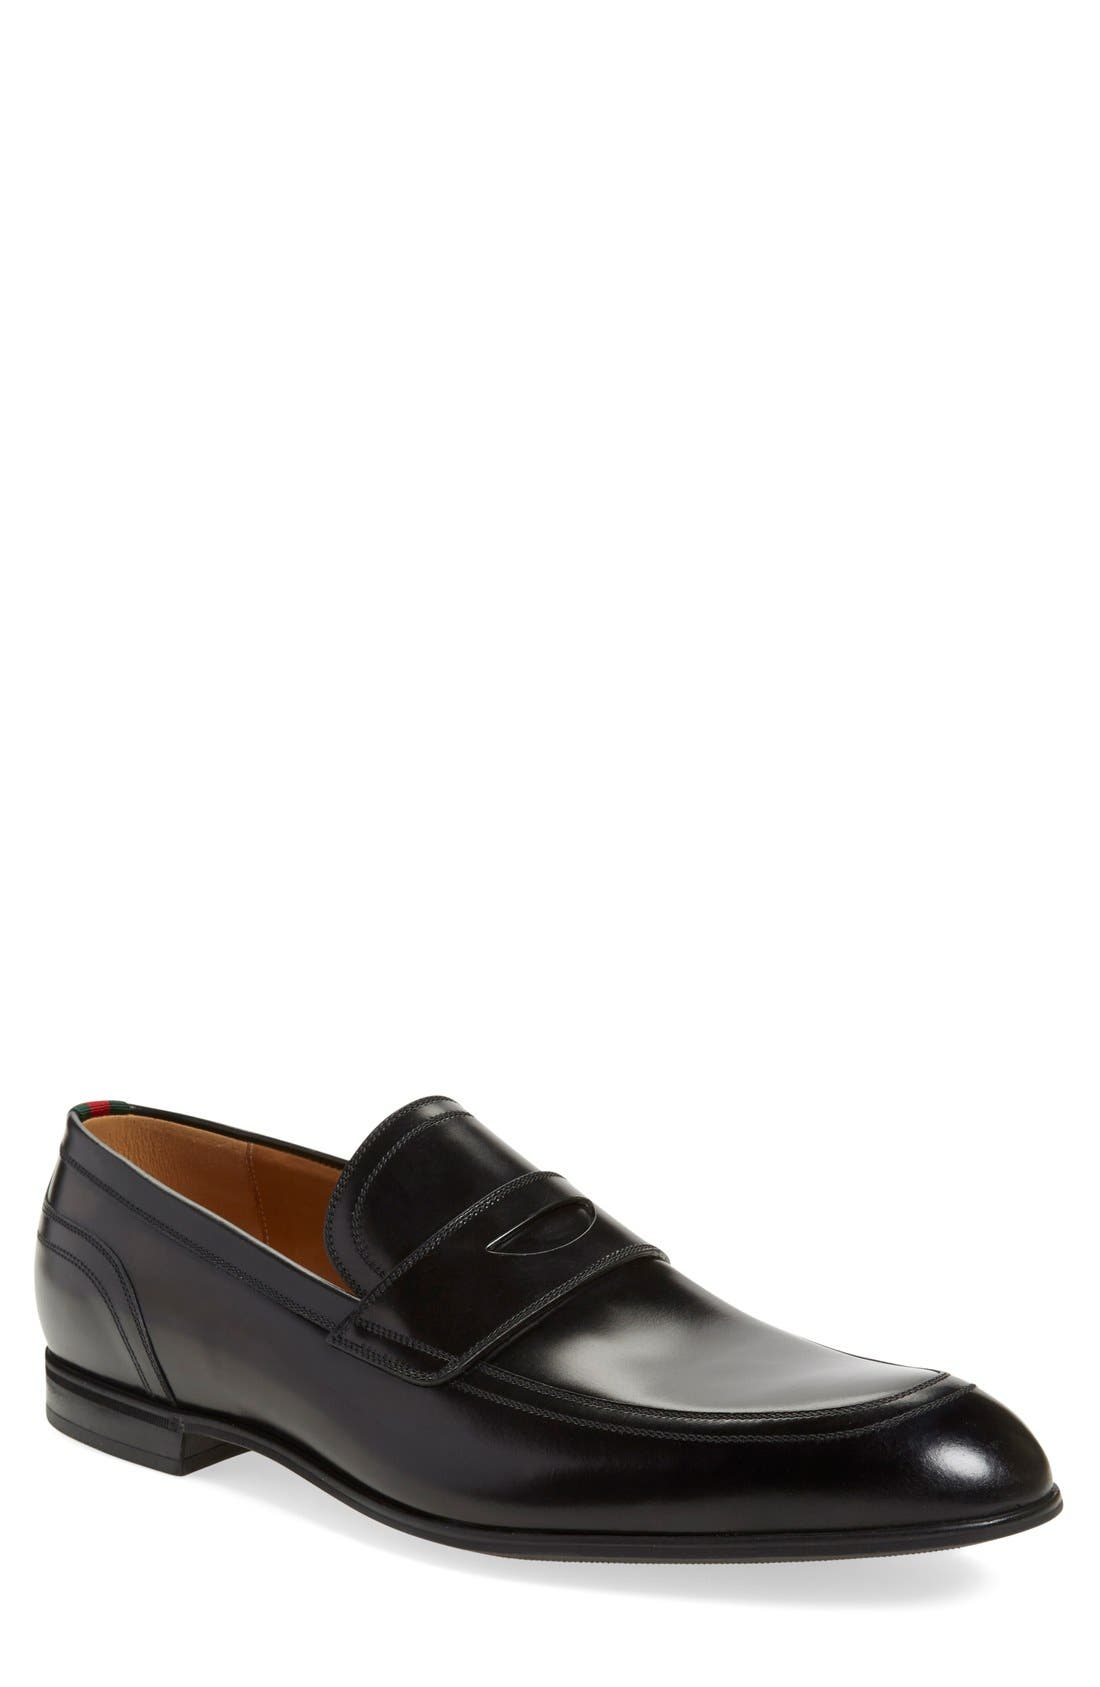 Main Image - Gucci Ravello Penny Loafer (Men)